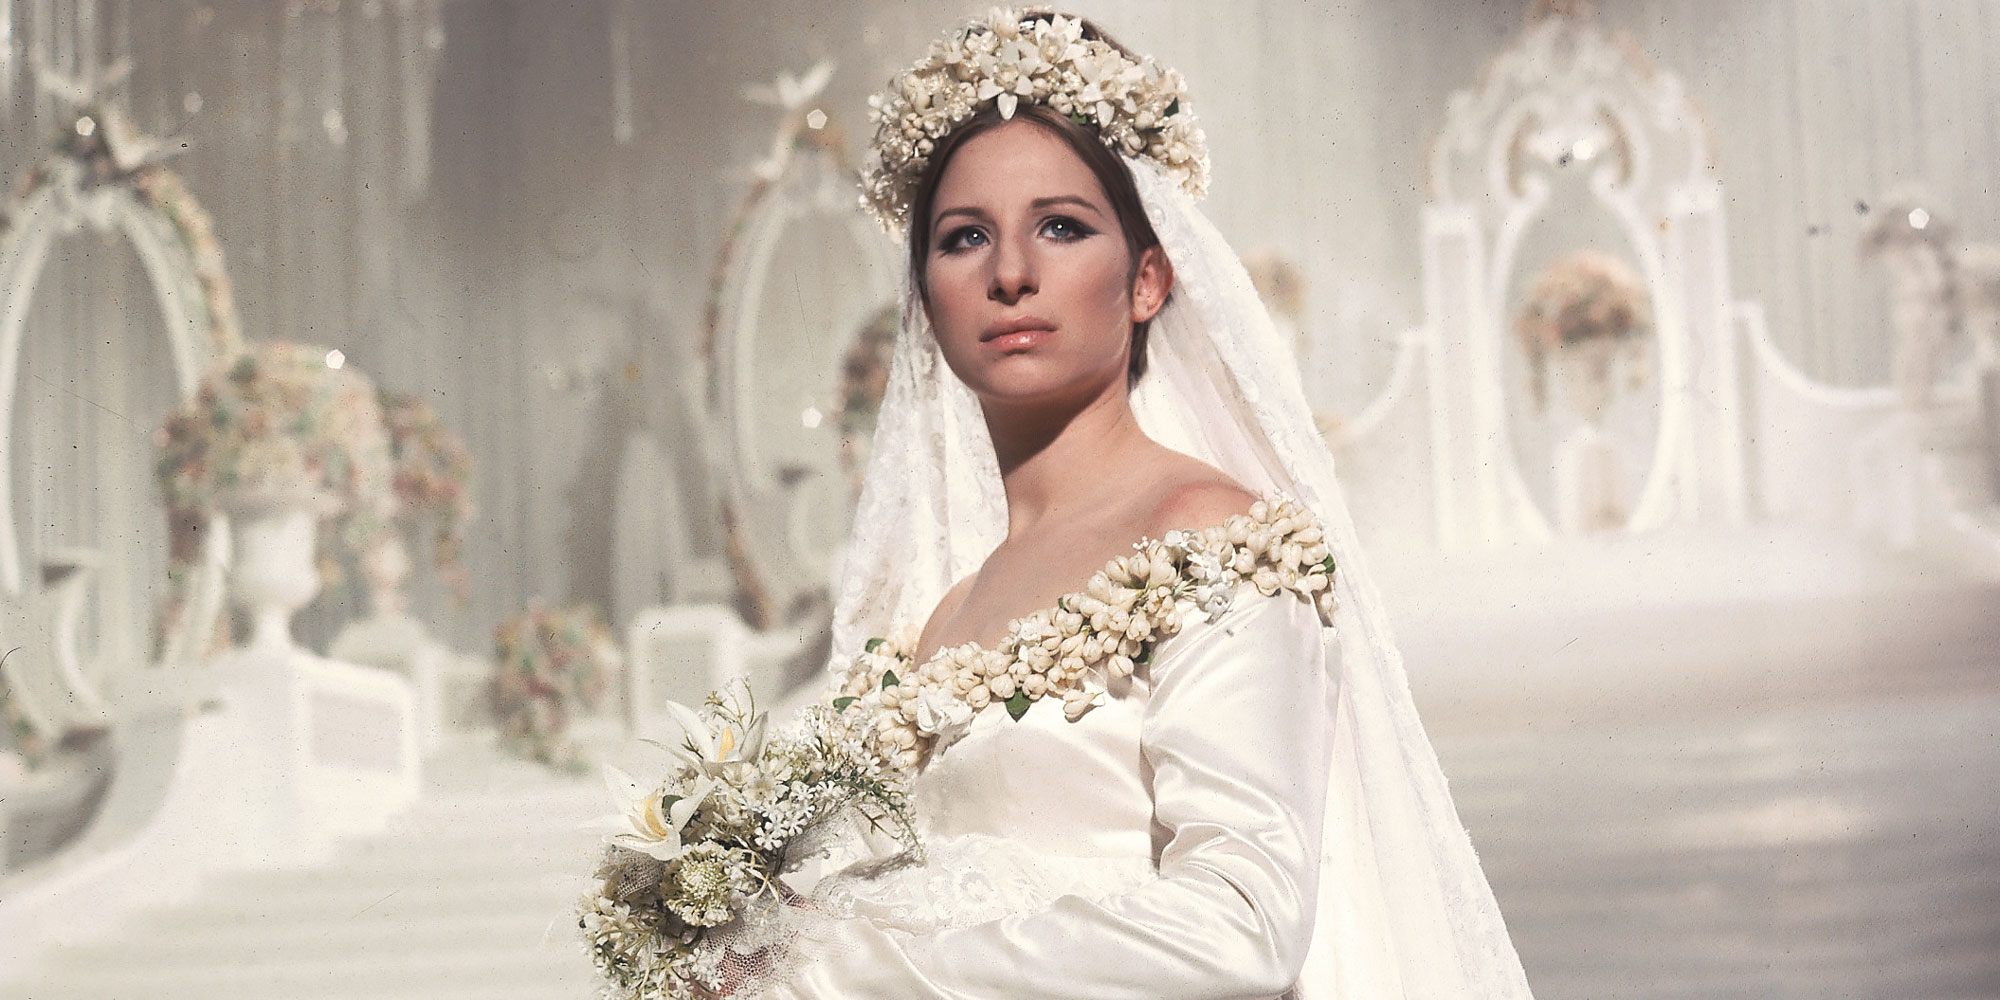 Most Beautiful Wedding Dresses in Movies